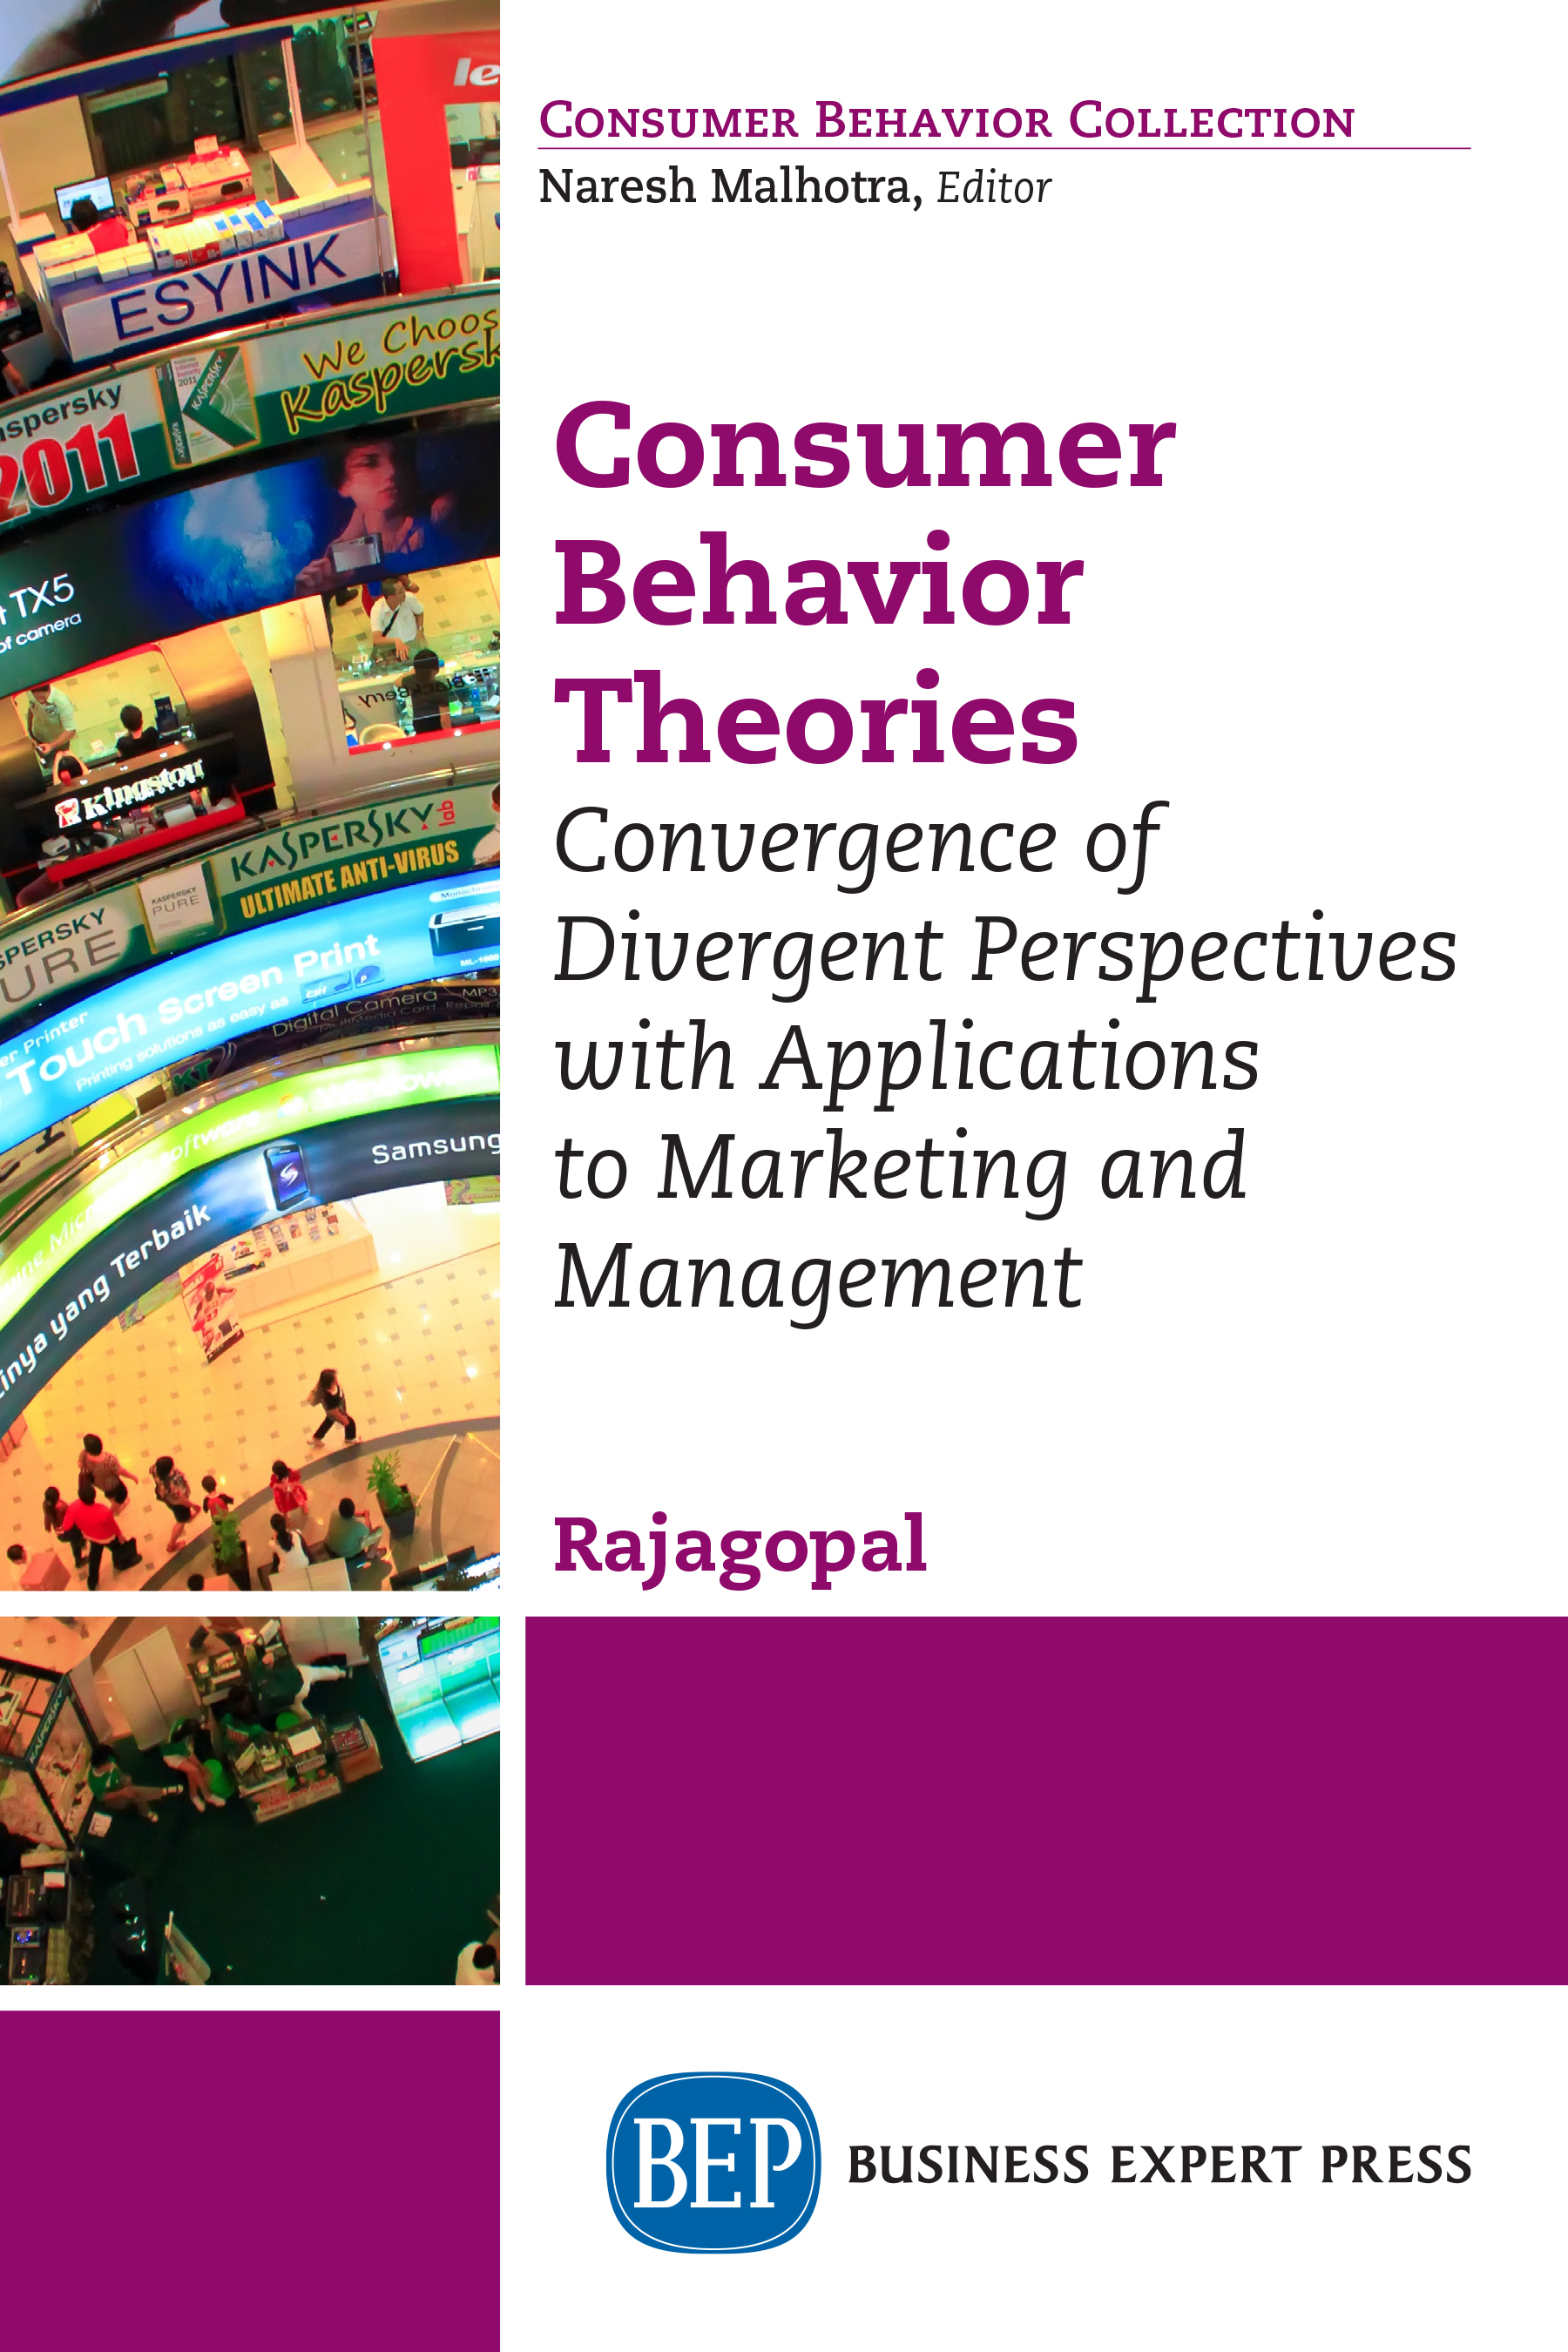 Consumer Behavior Theories